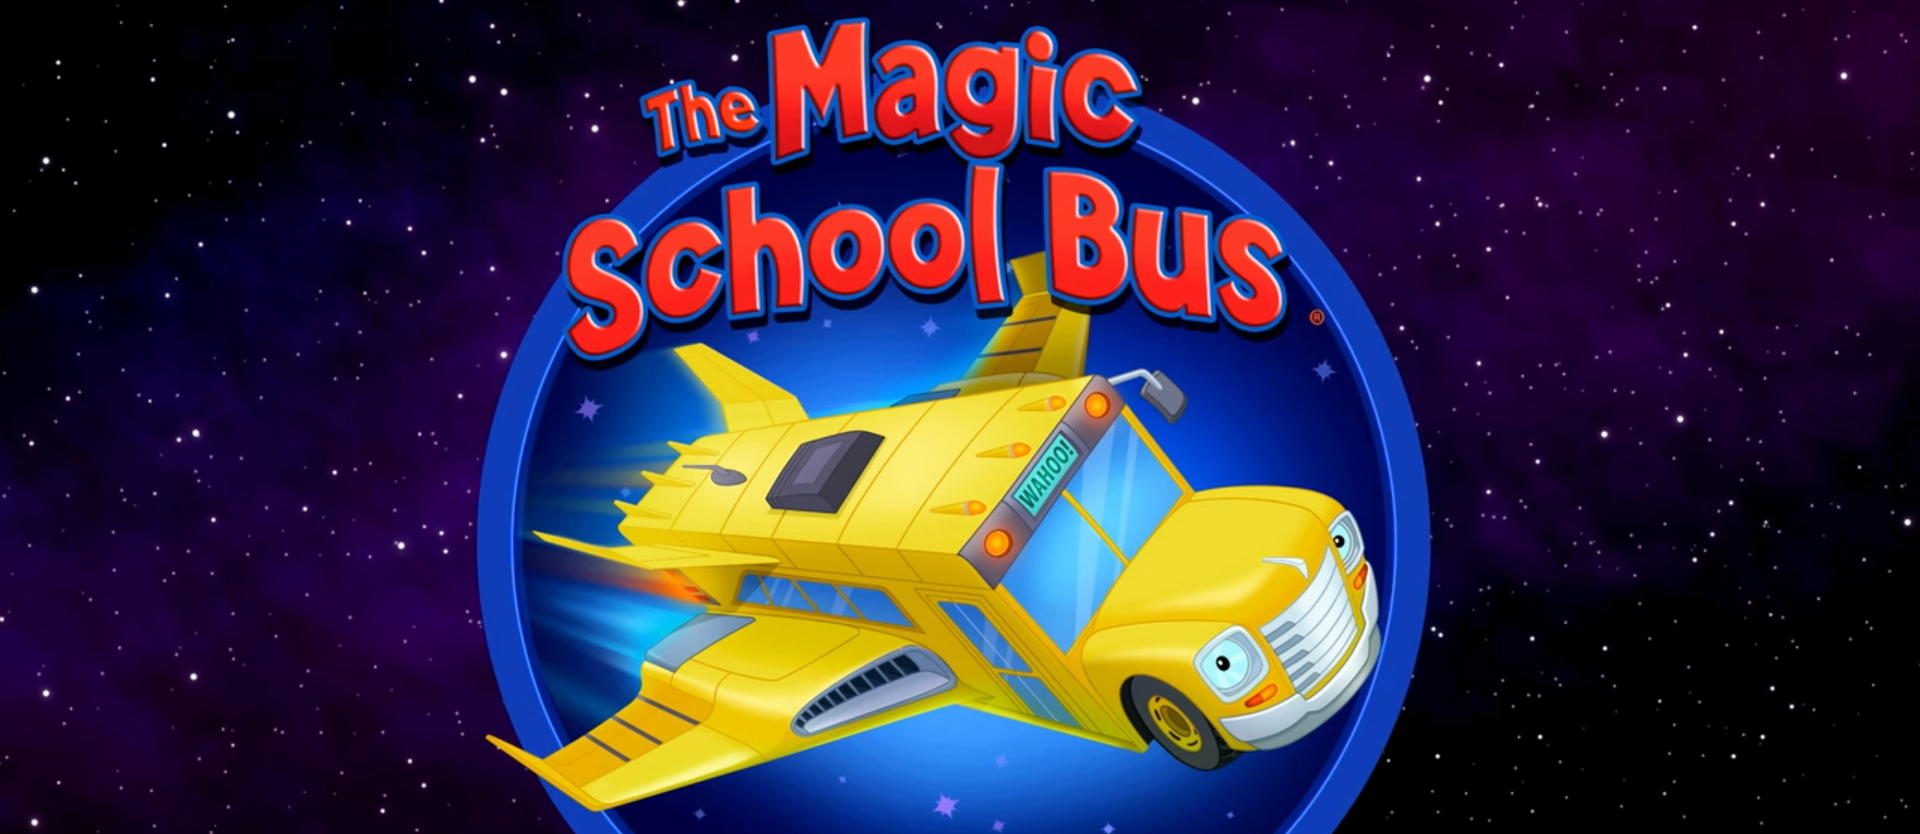 he Magic School Bus Rides Again Kids In Space. Image Credit: Netflix.